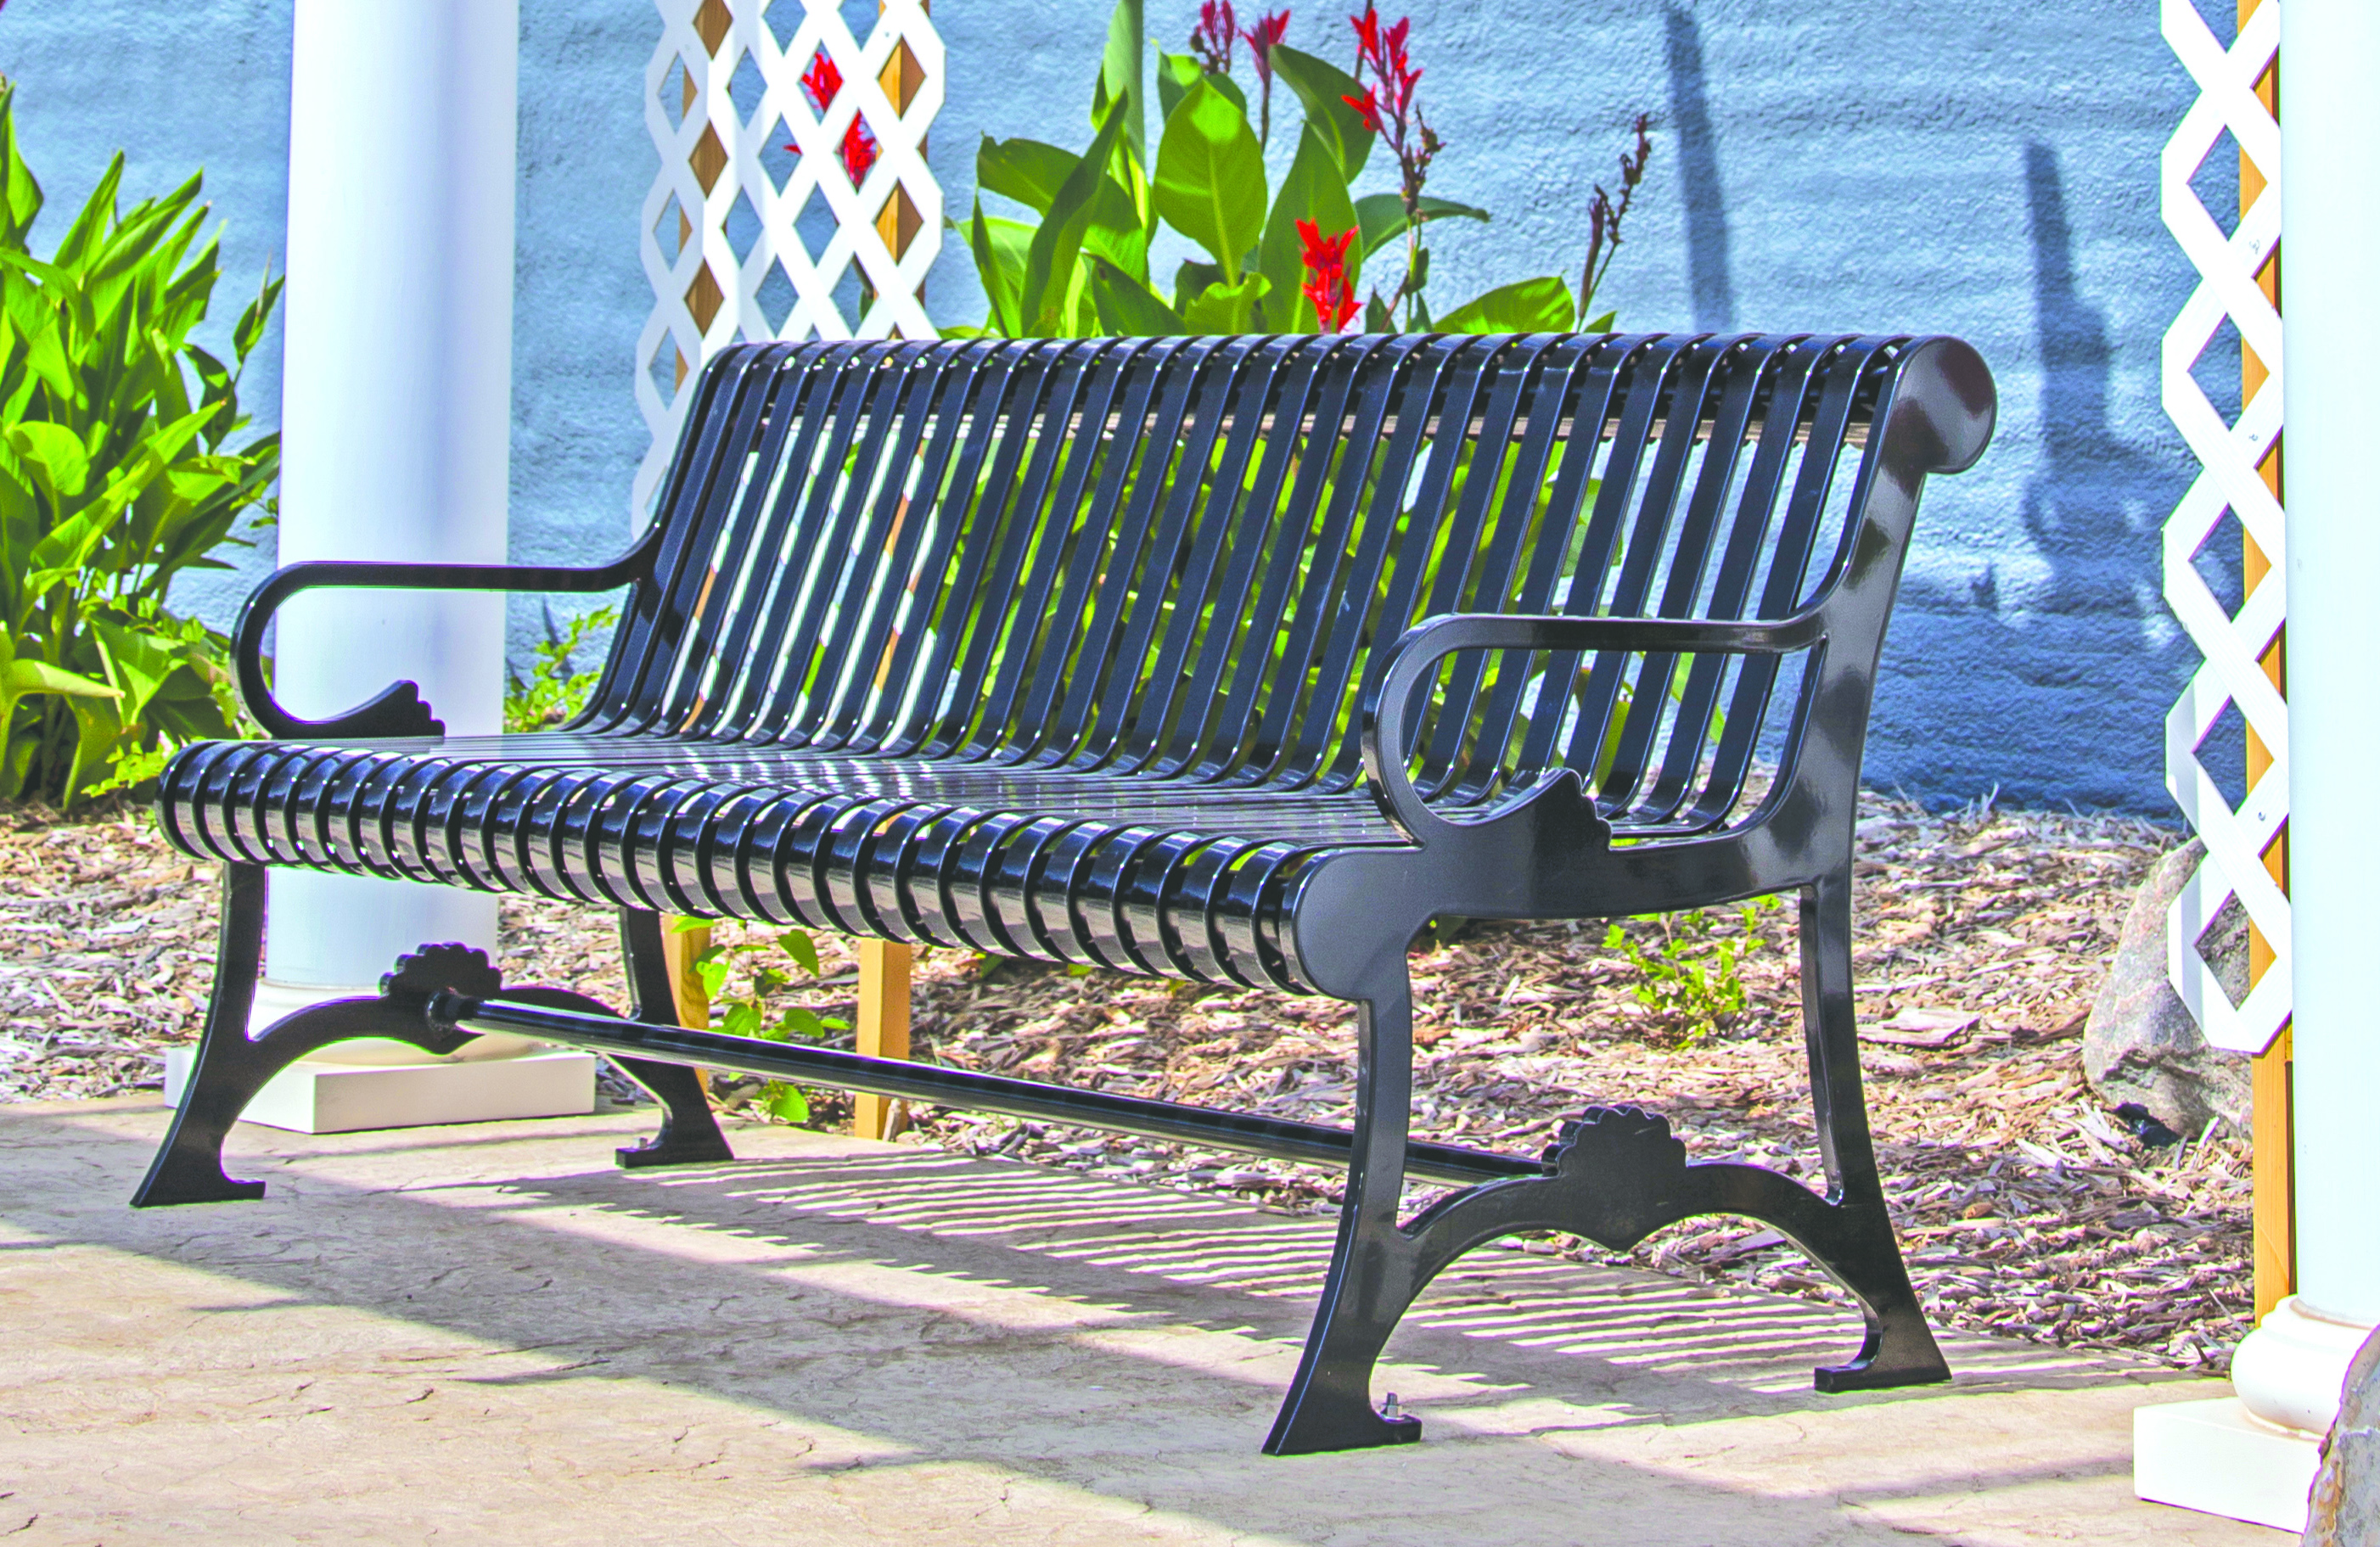 Cool Plaza Strap Metal Bench With Backrest Gmtry Best Dining Table And Chair Ideas Images Gmtryco